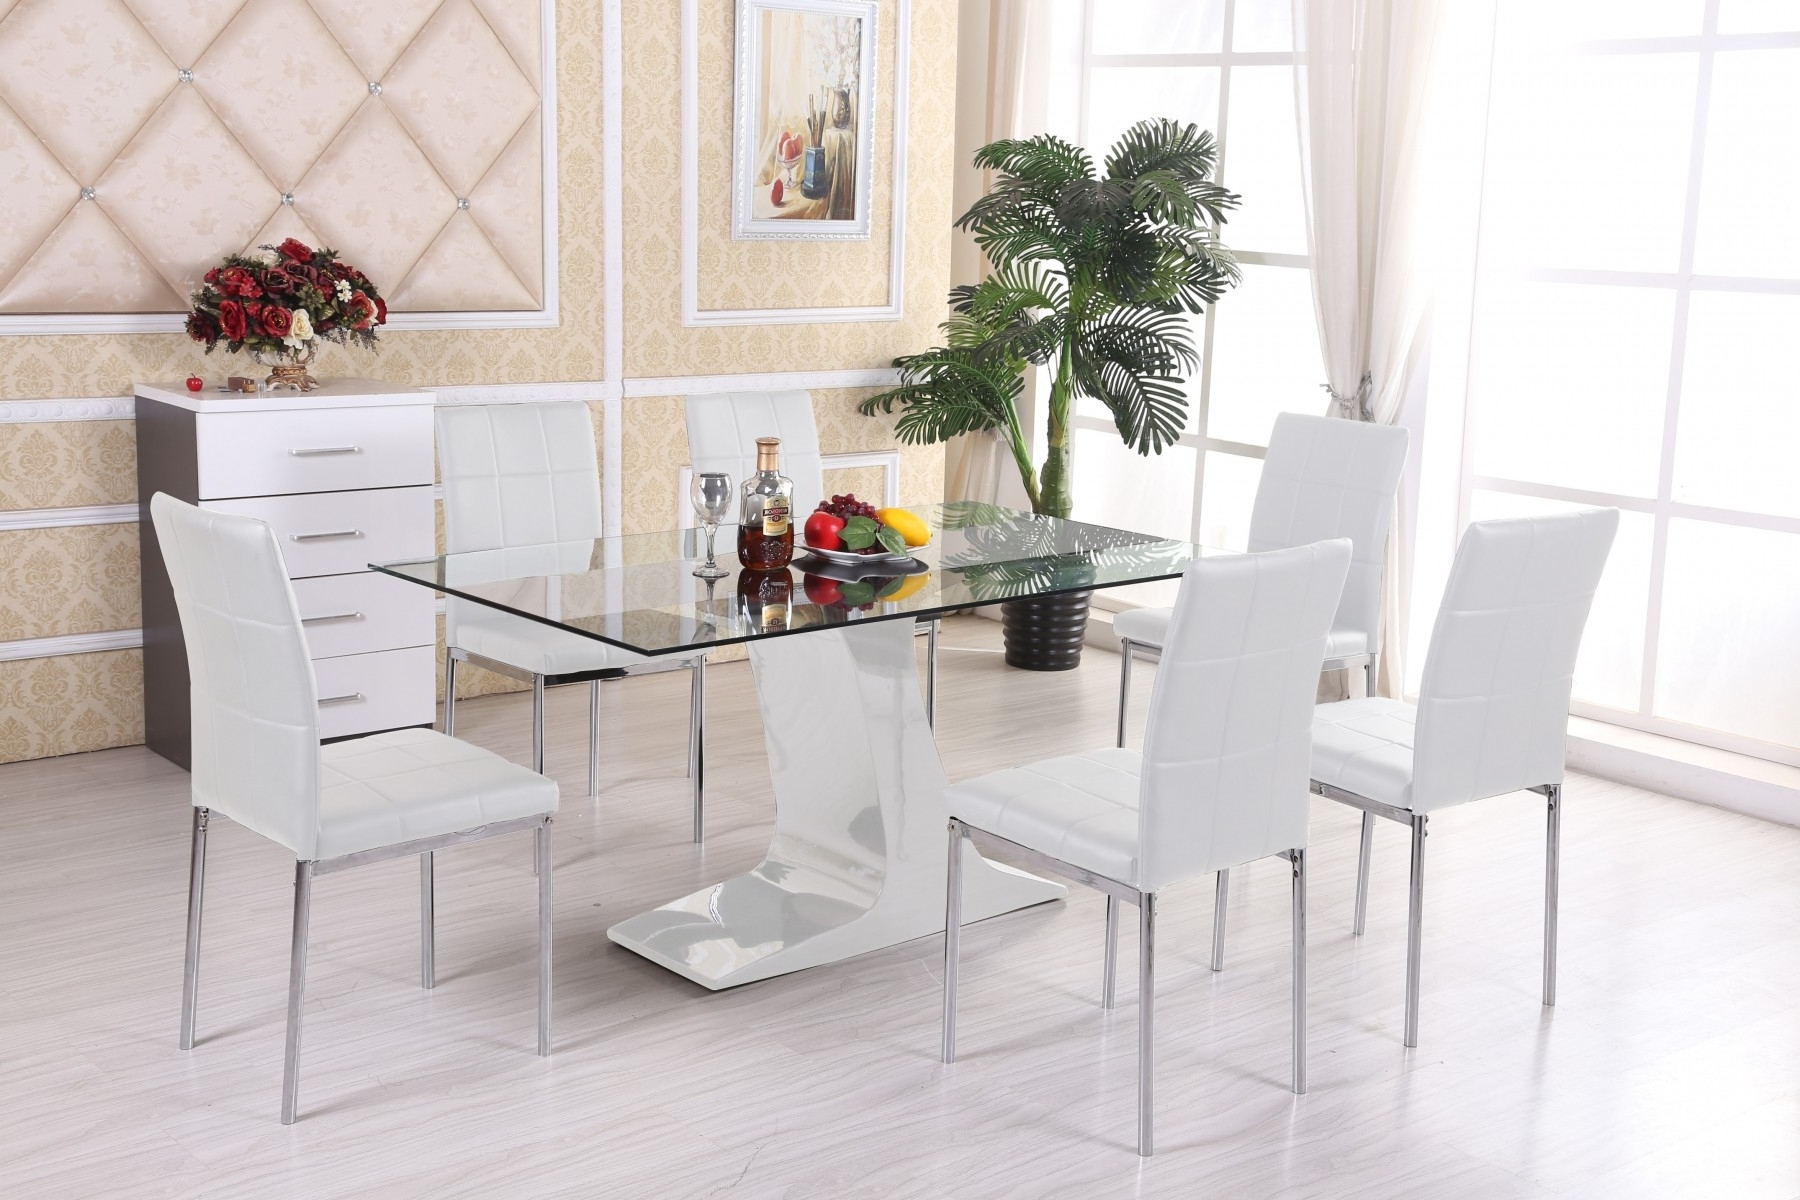 4 Optimal Choices In Glass Dining Table And Chairs – Blogbeen Intended For Fashionable Glass Dining Tables And Chairs (View 1 of 25)